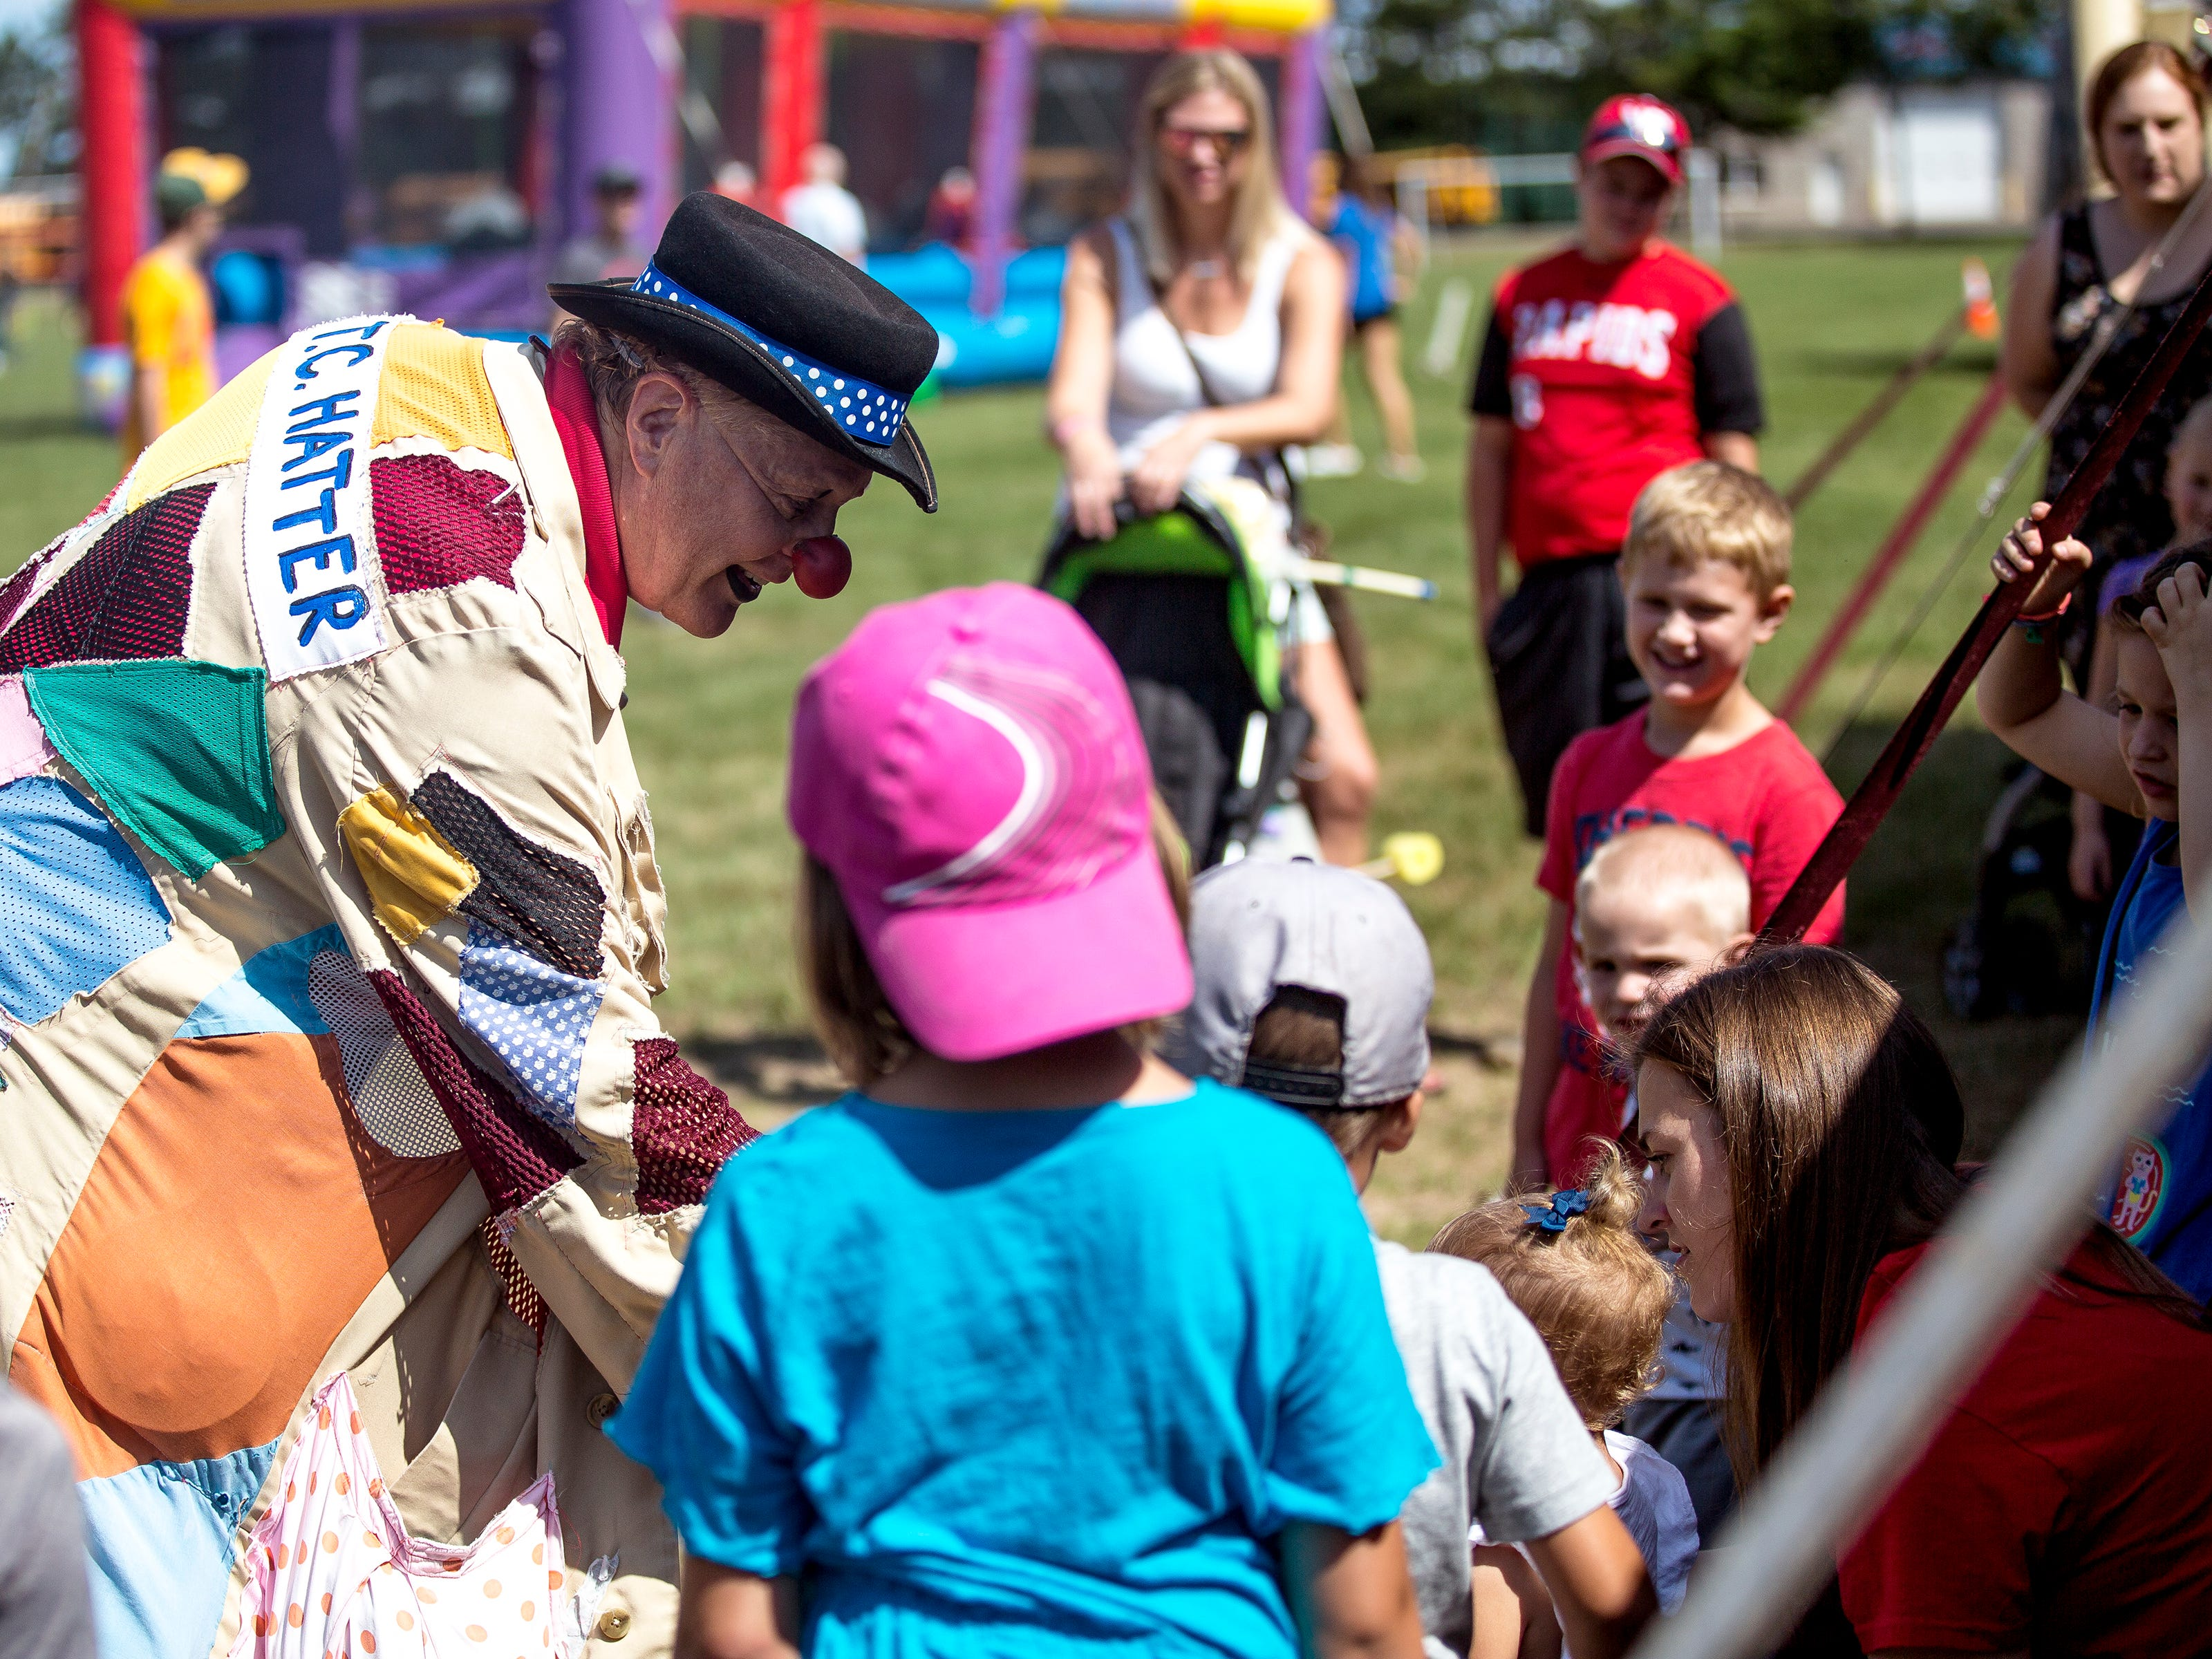 A clown entertains children during Celebrate Plover at Lake Pacawa Park in Plover, Wis., July 28, 2018.